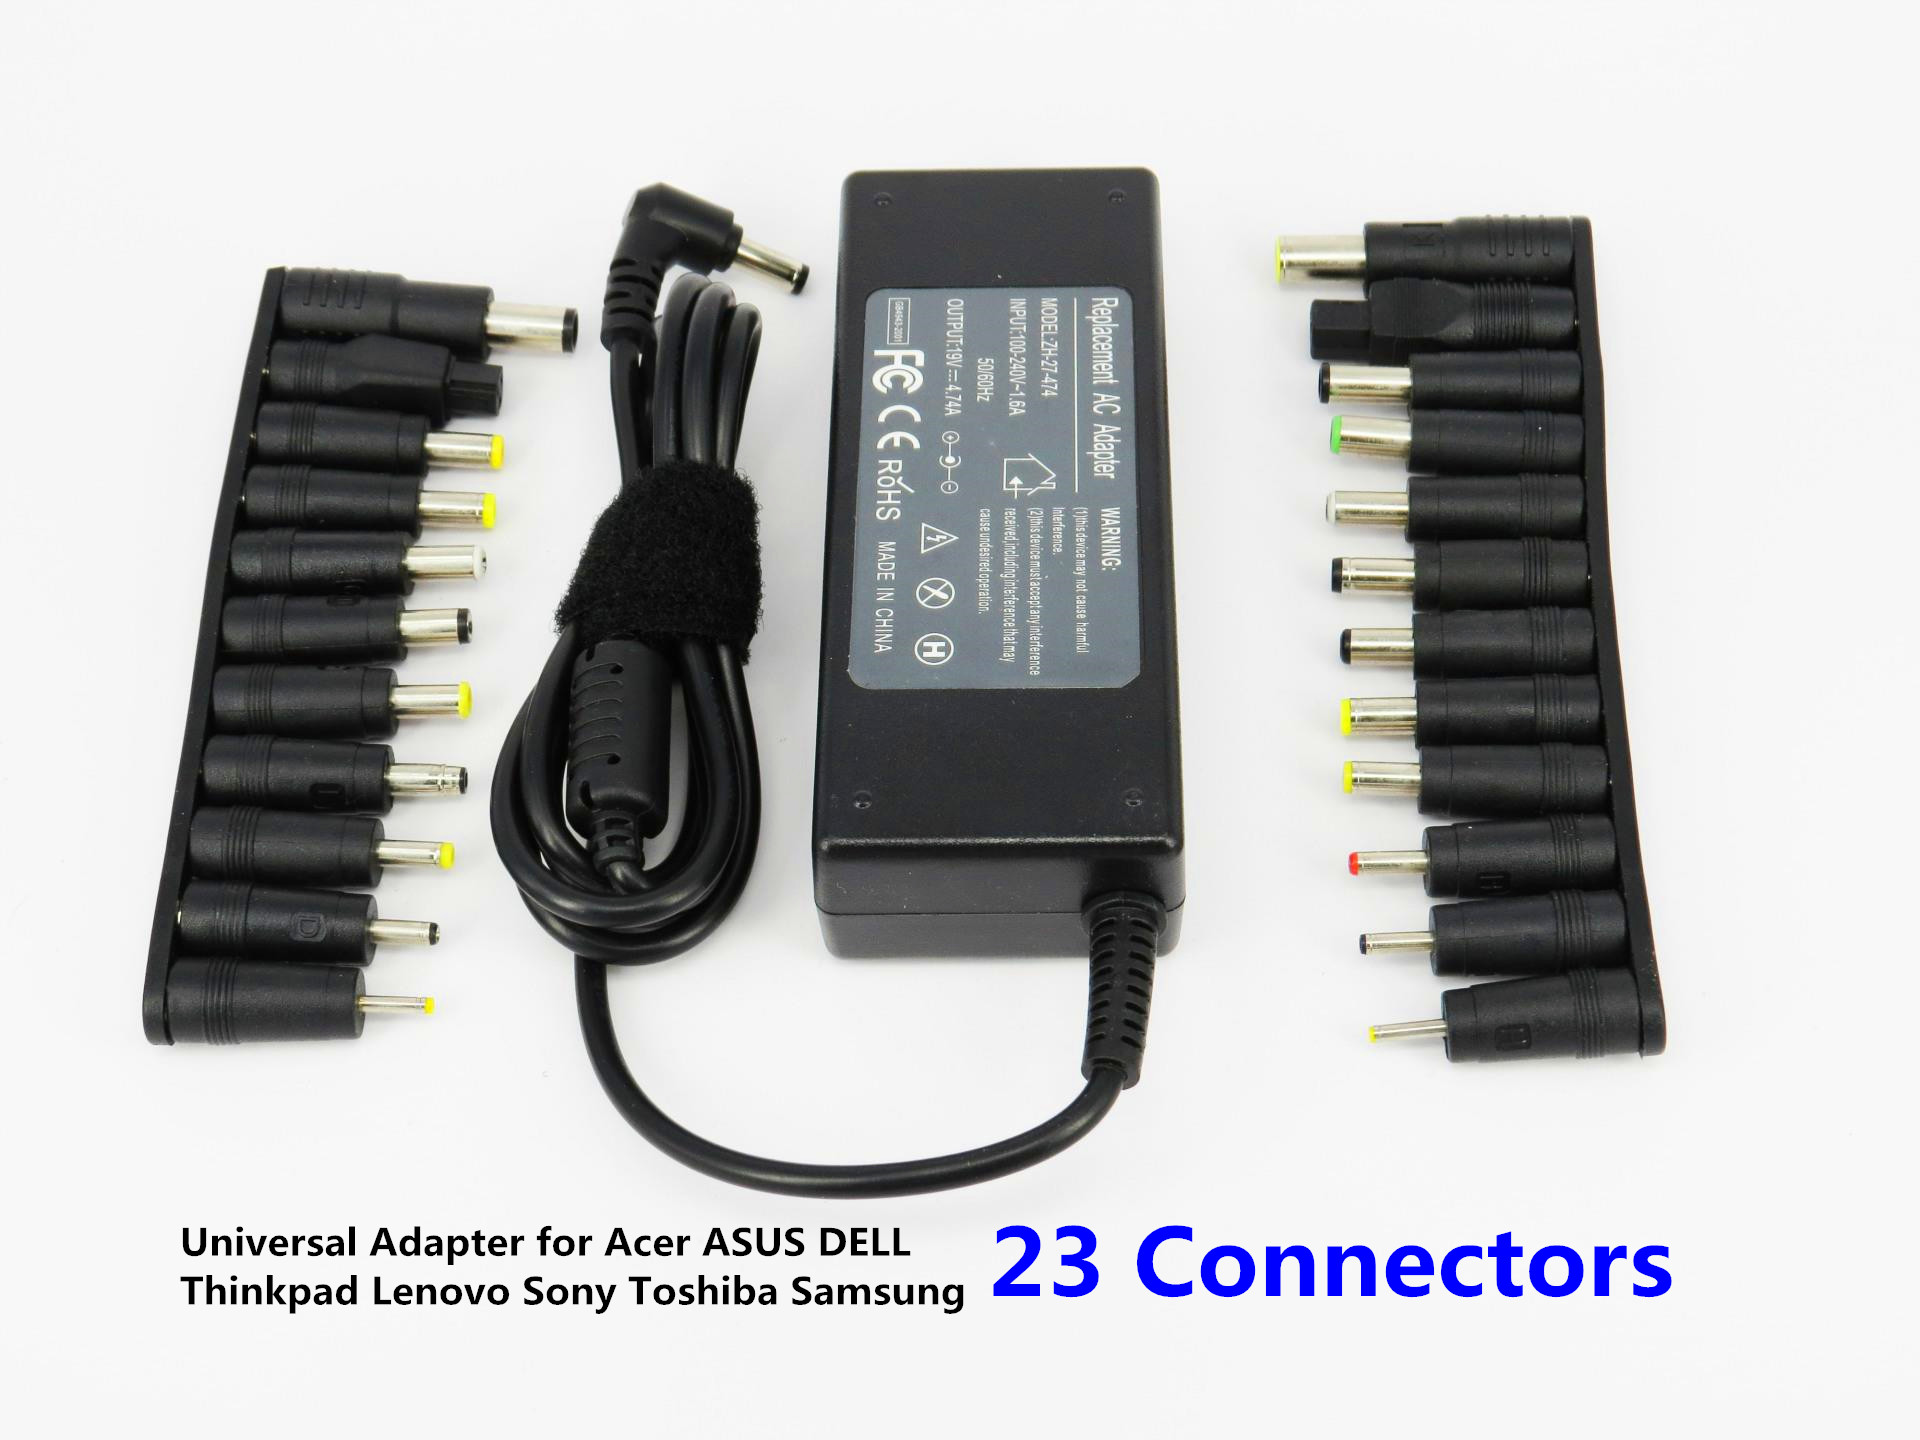 90W Laptop AC Universal Power Adapter Charger for Acer ASUS DELL Lenovo Toshiba Samsung 23 Connectors 19V 4.74A все цены